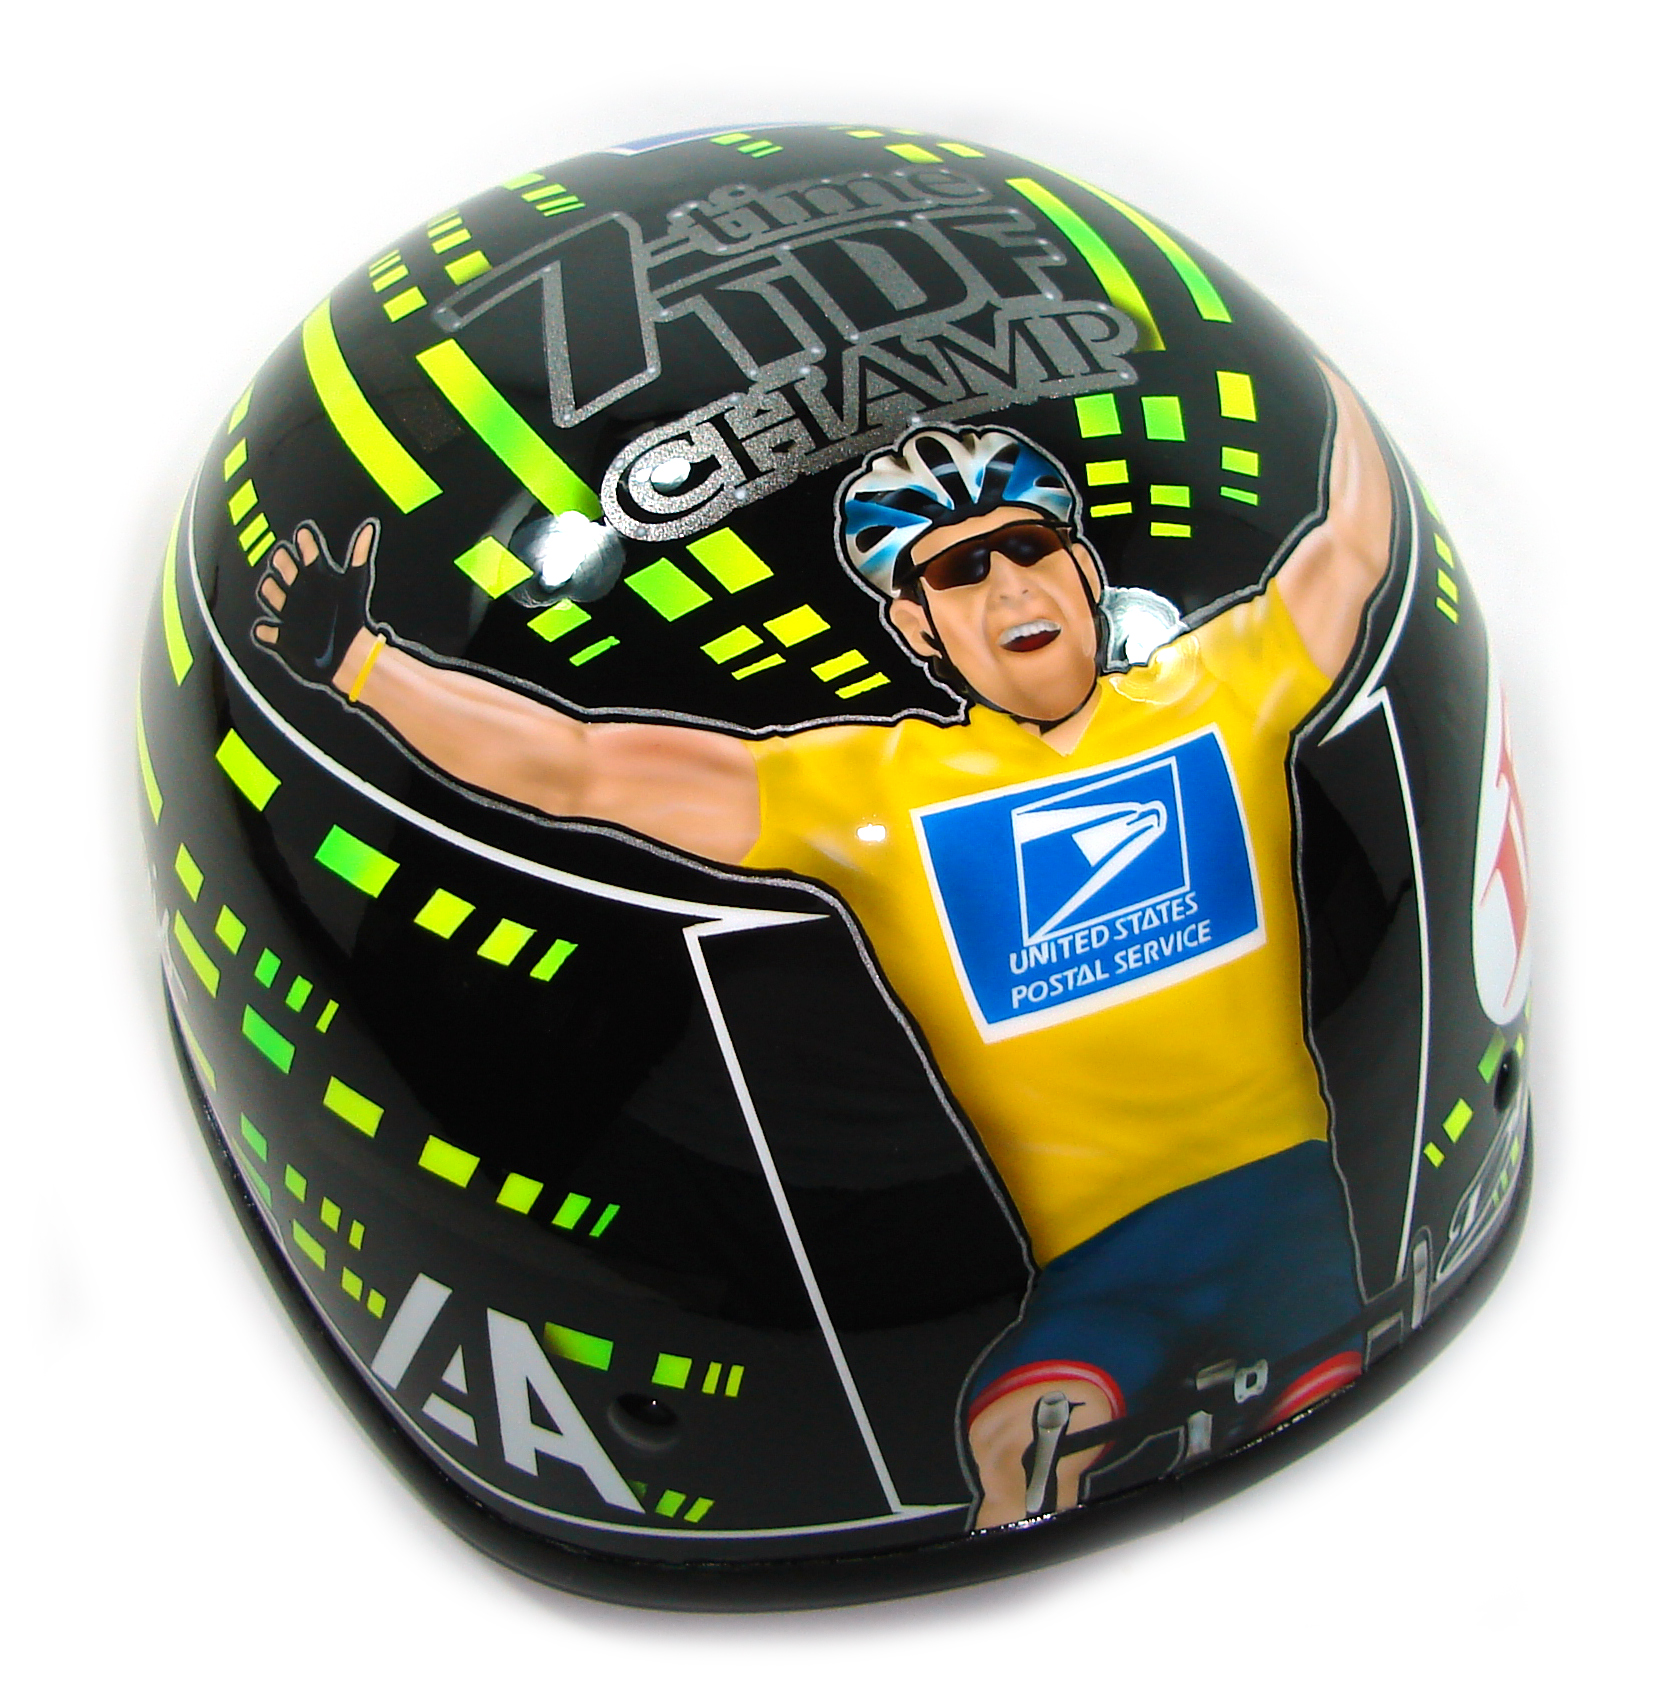 case 7 armstrong helmet company